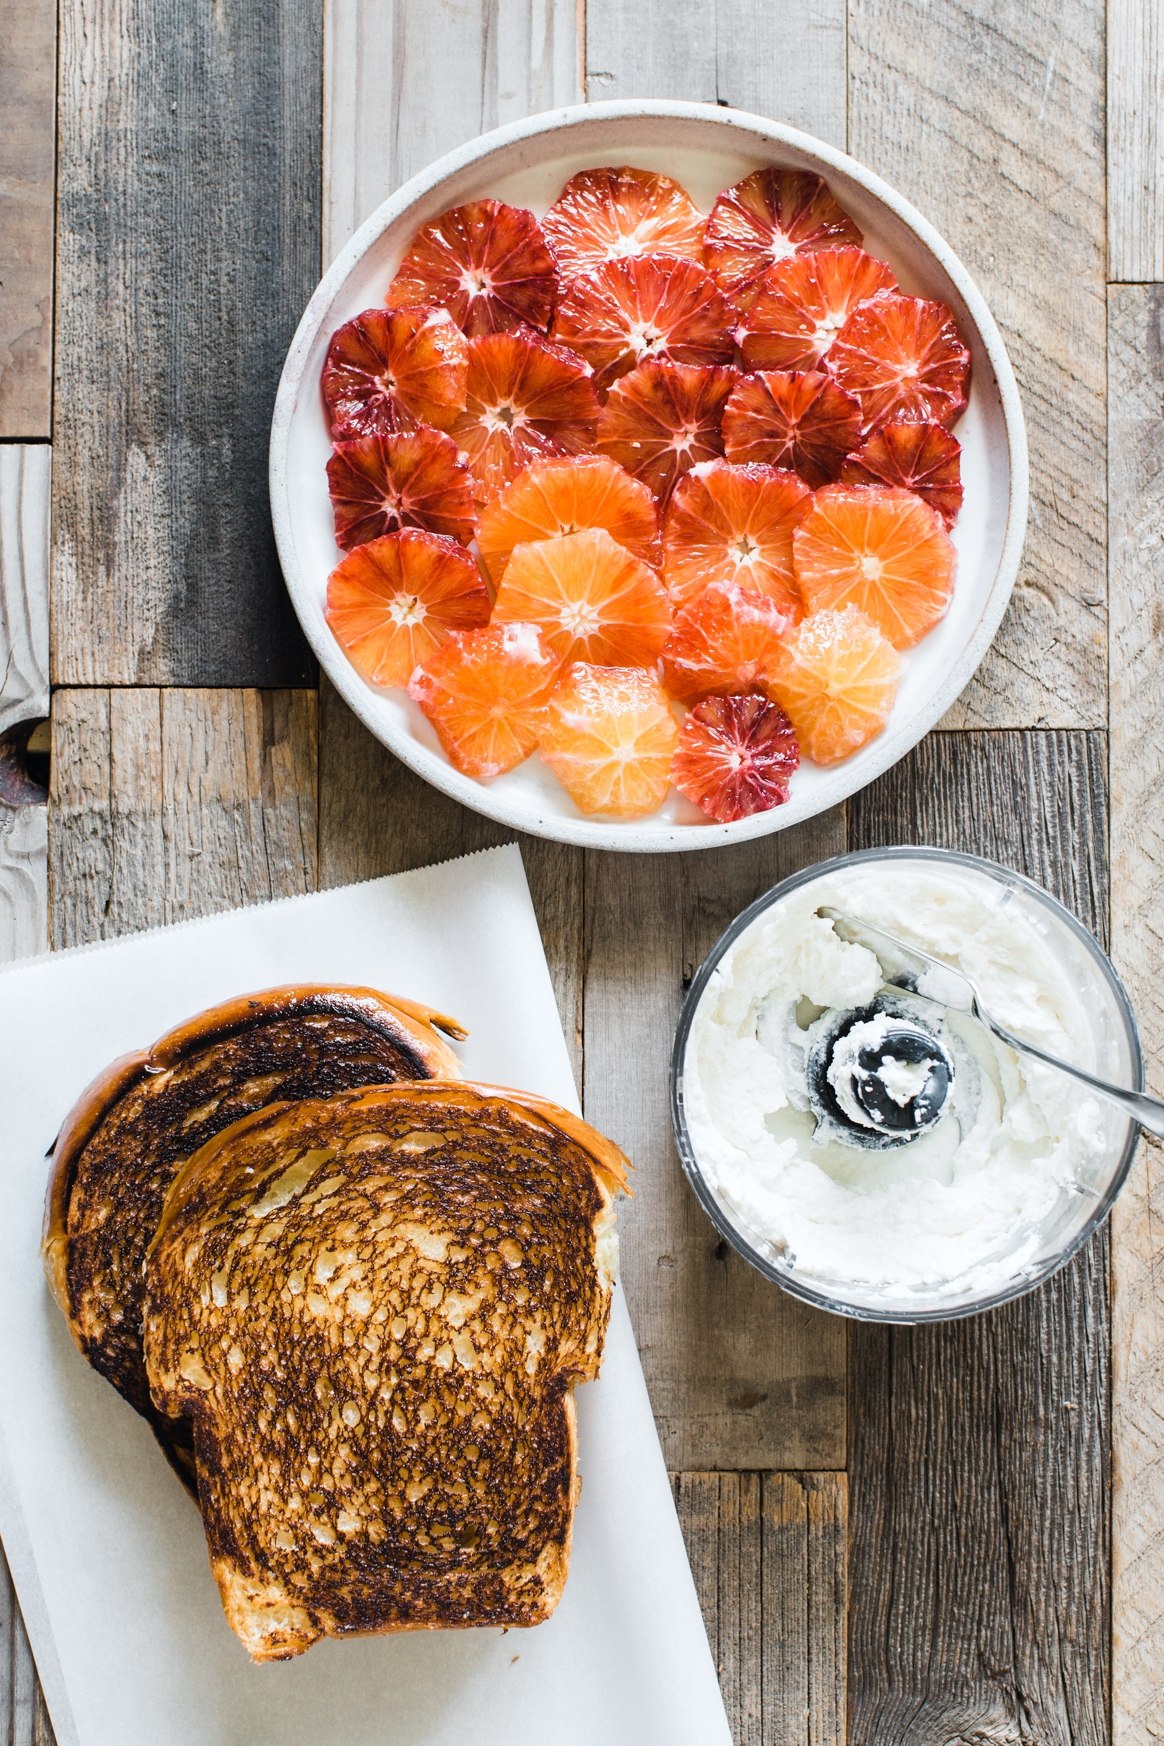 Making Blood Orange Ricotta Toast